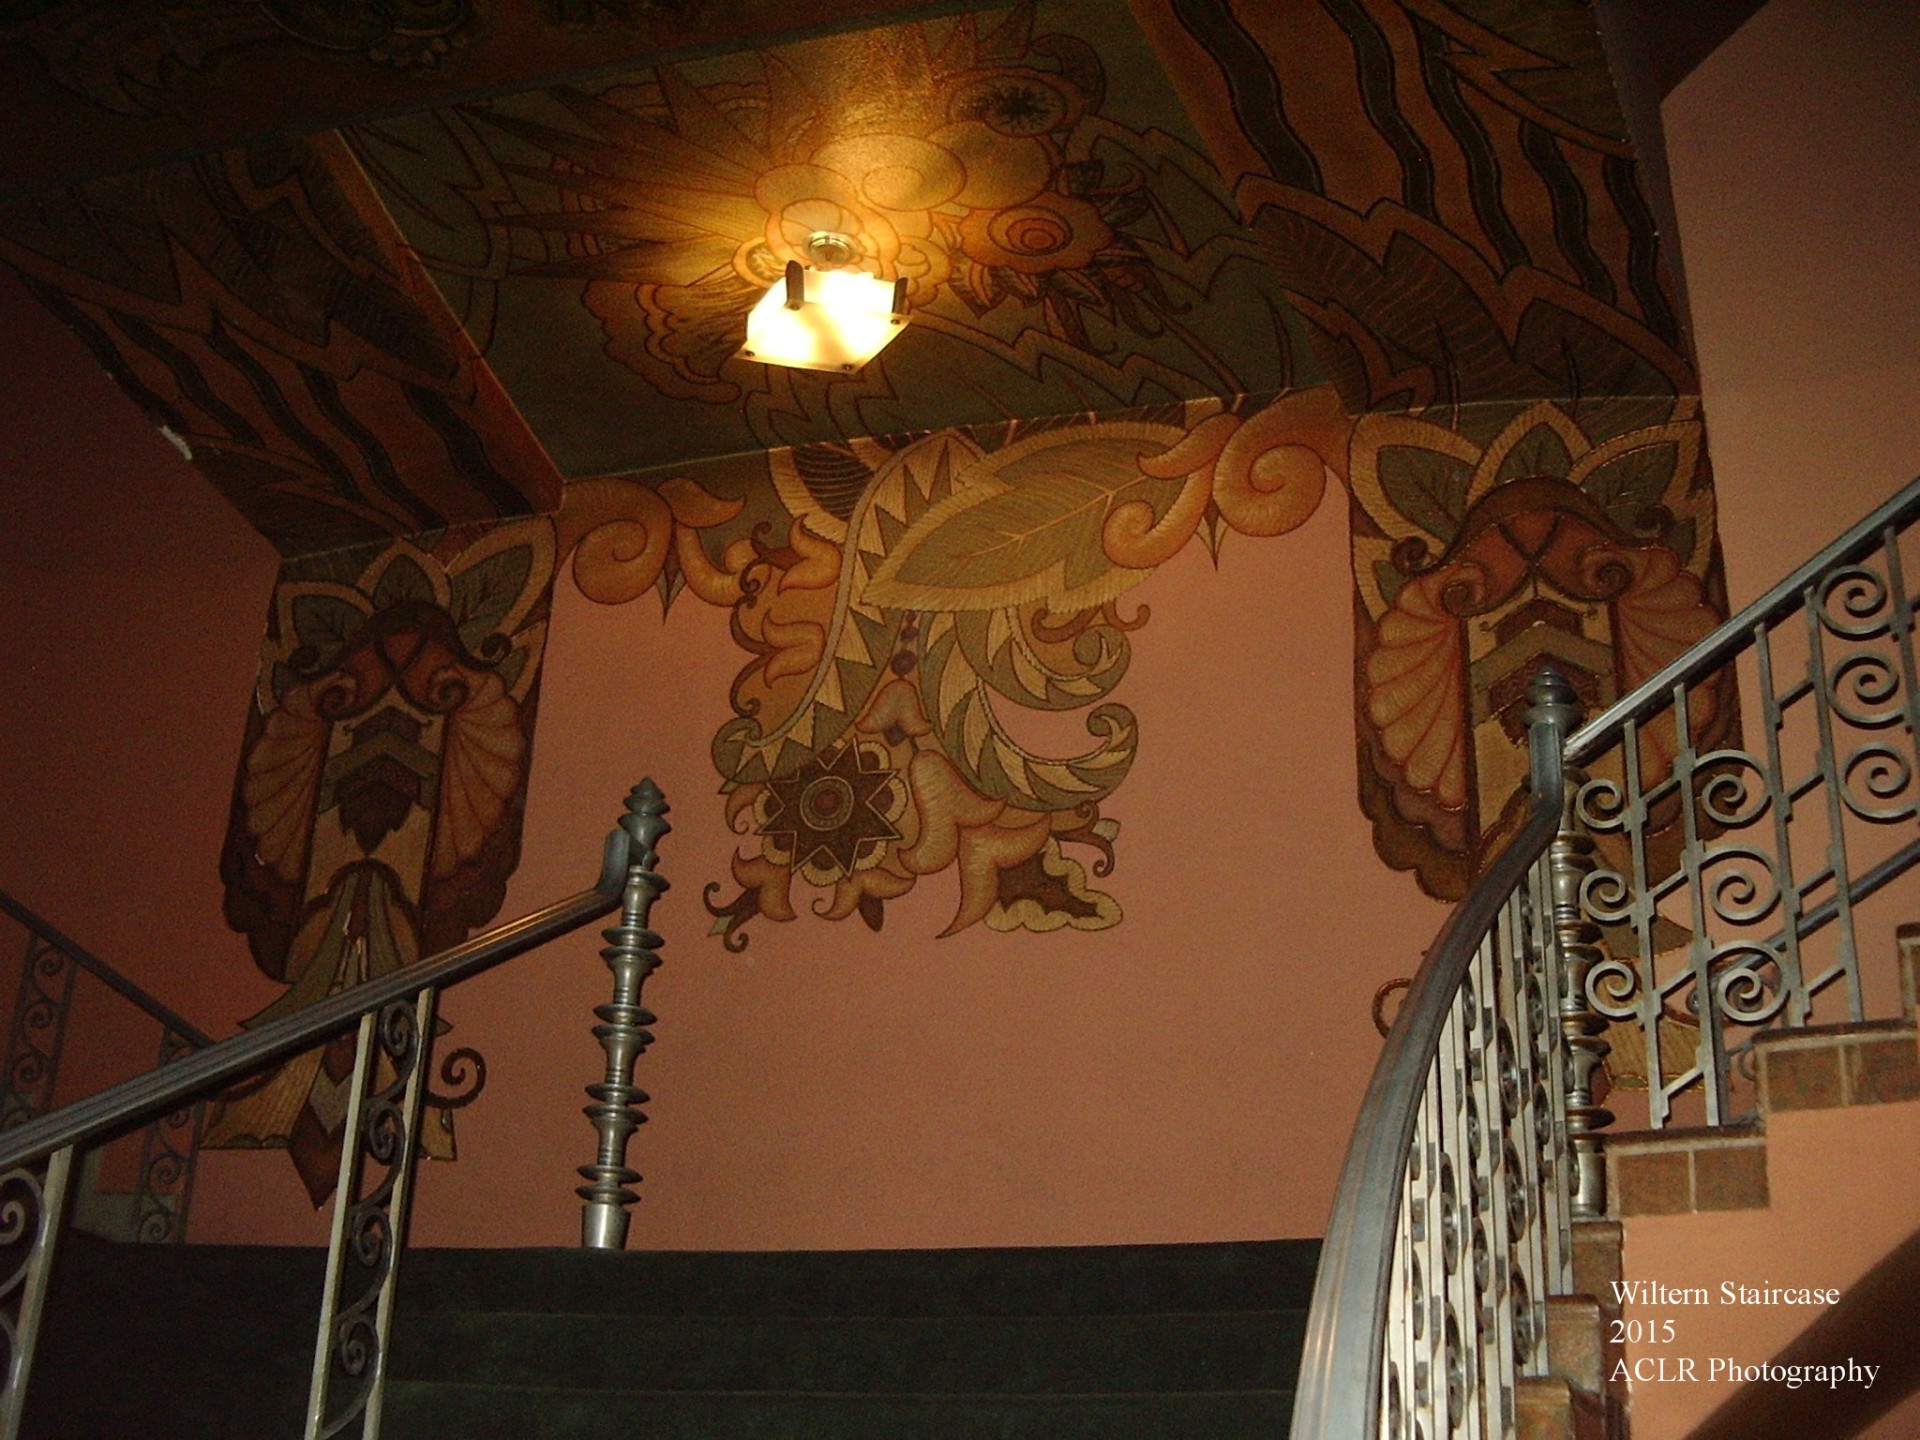 Wiltern Staircase